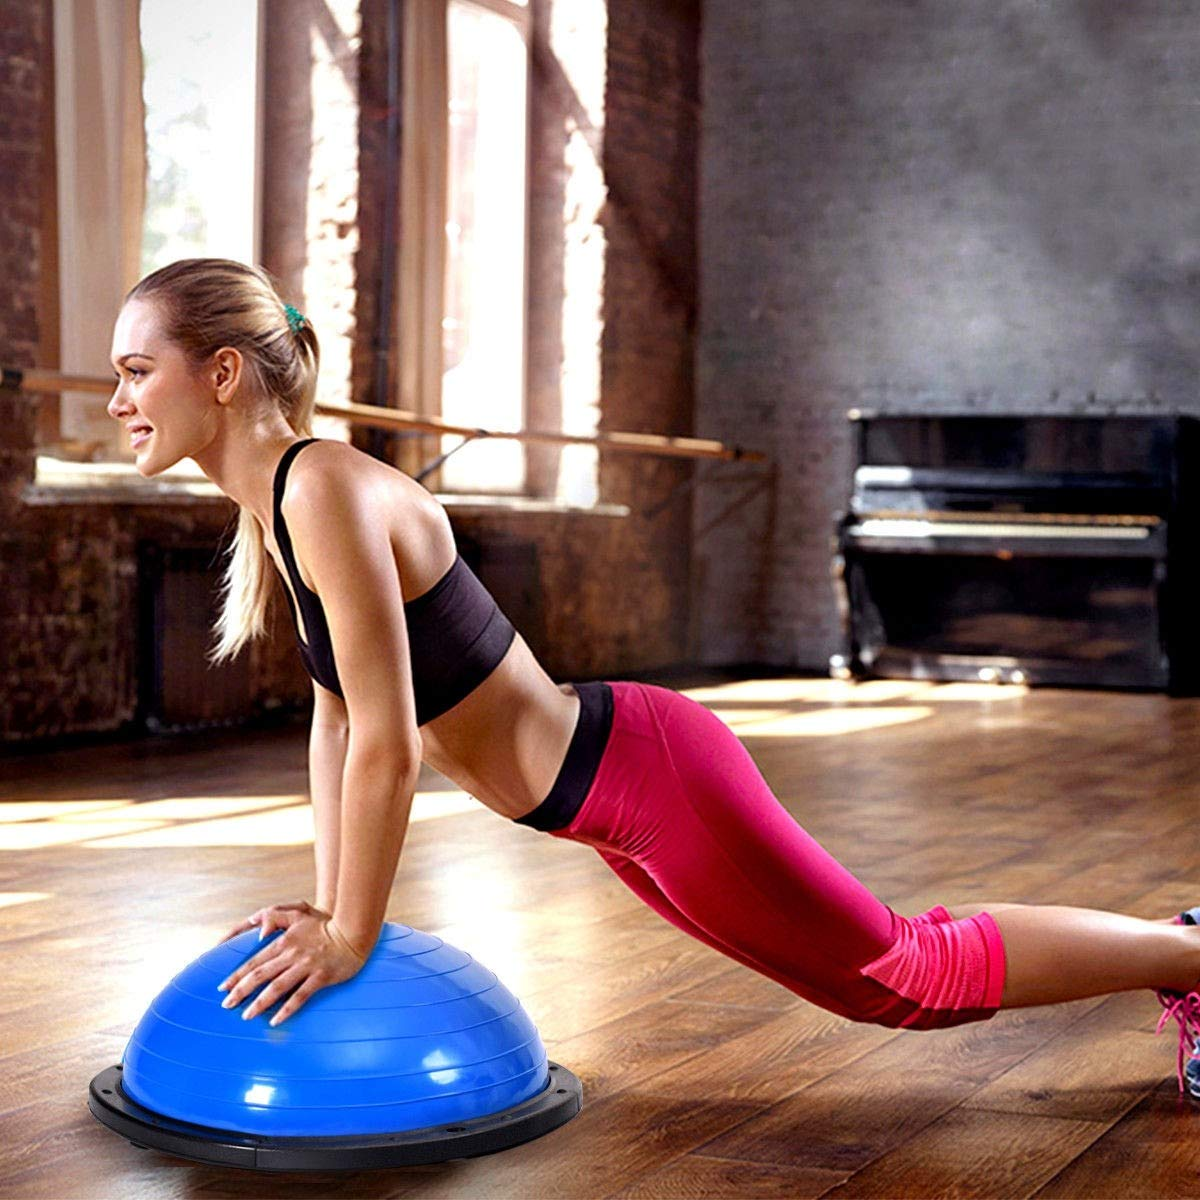 Exercise Ball, 23'' Exercise Yoga Ball Balance Trainer with Pump, Pink by MD Group (Image #3)